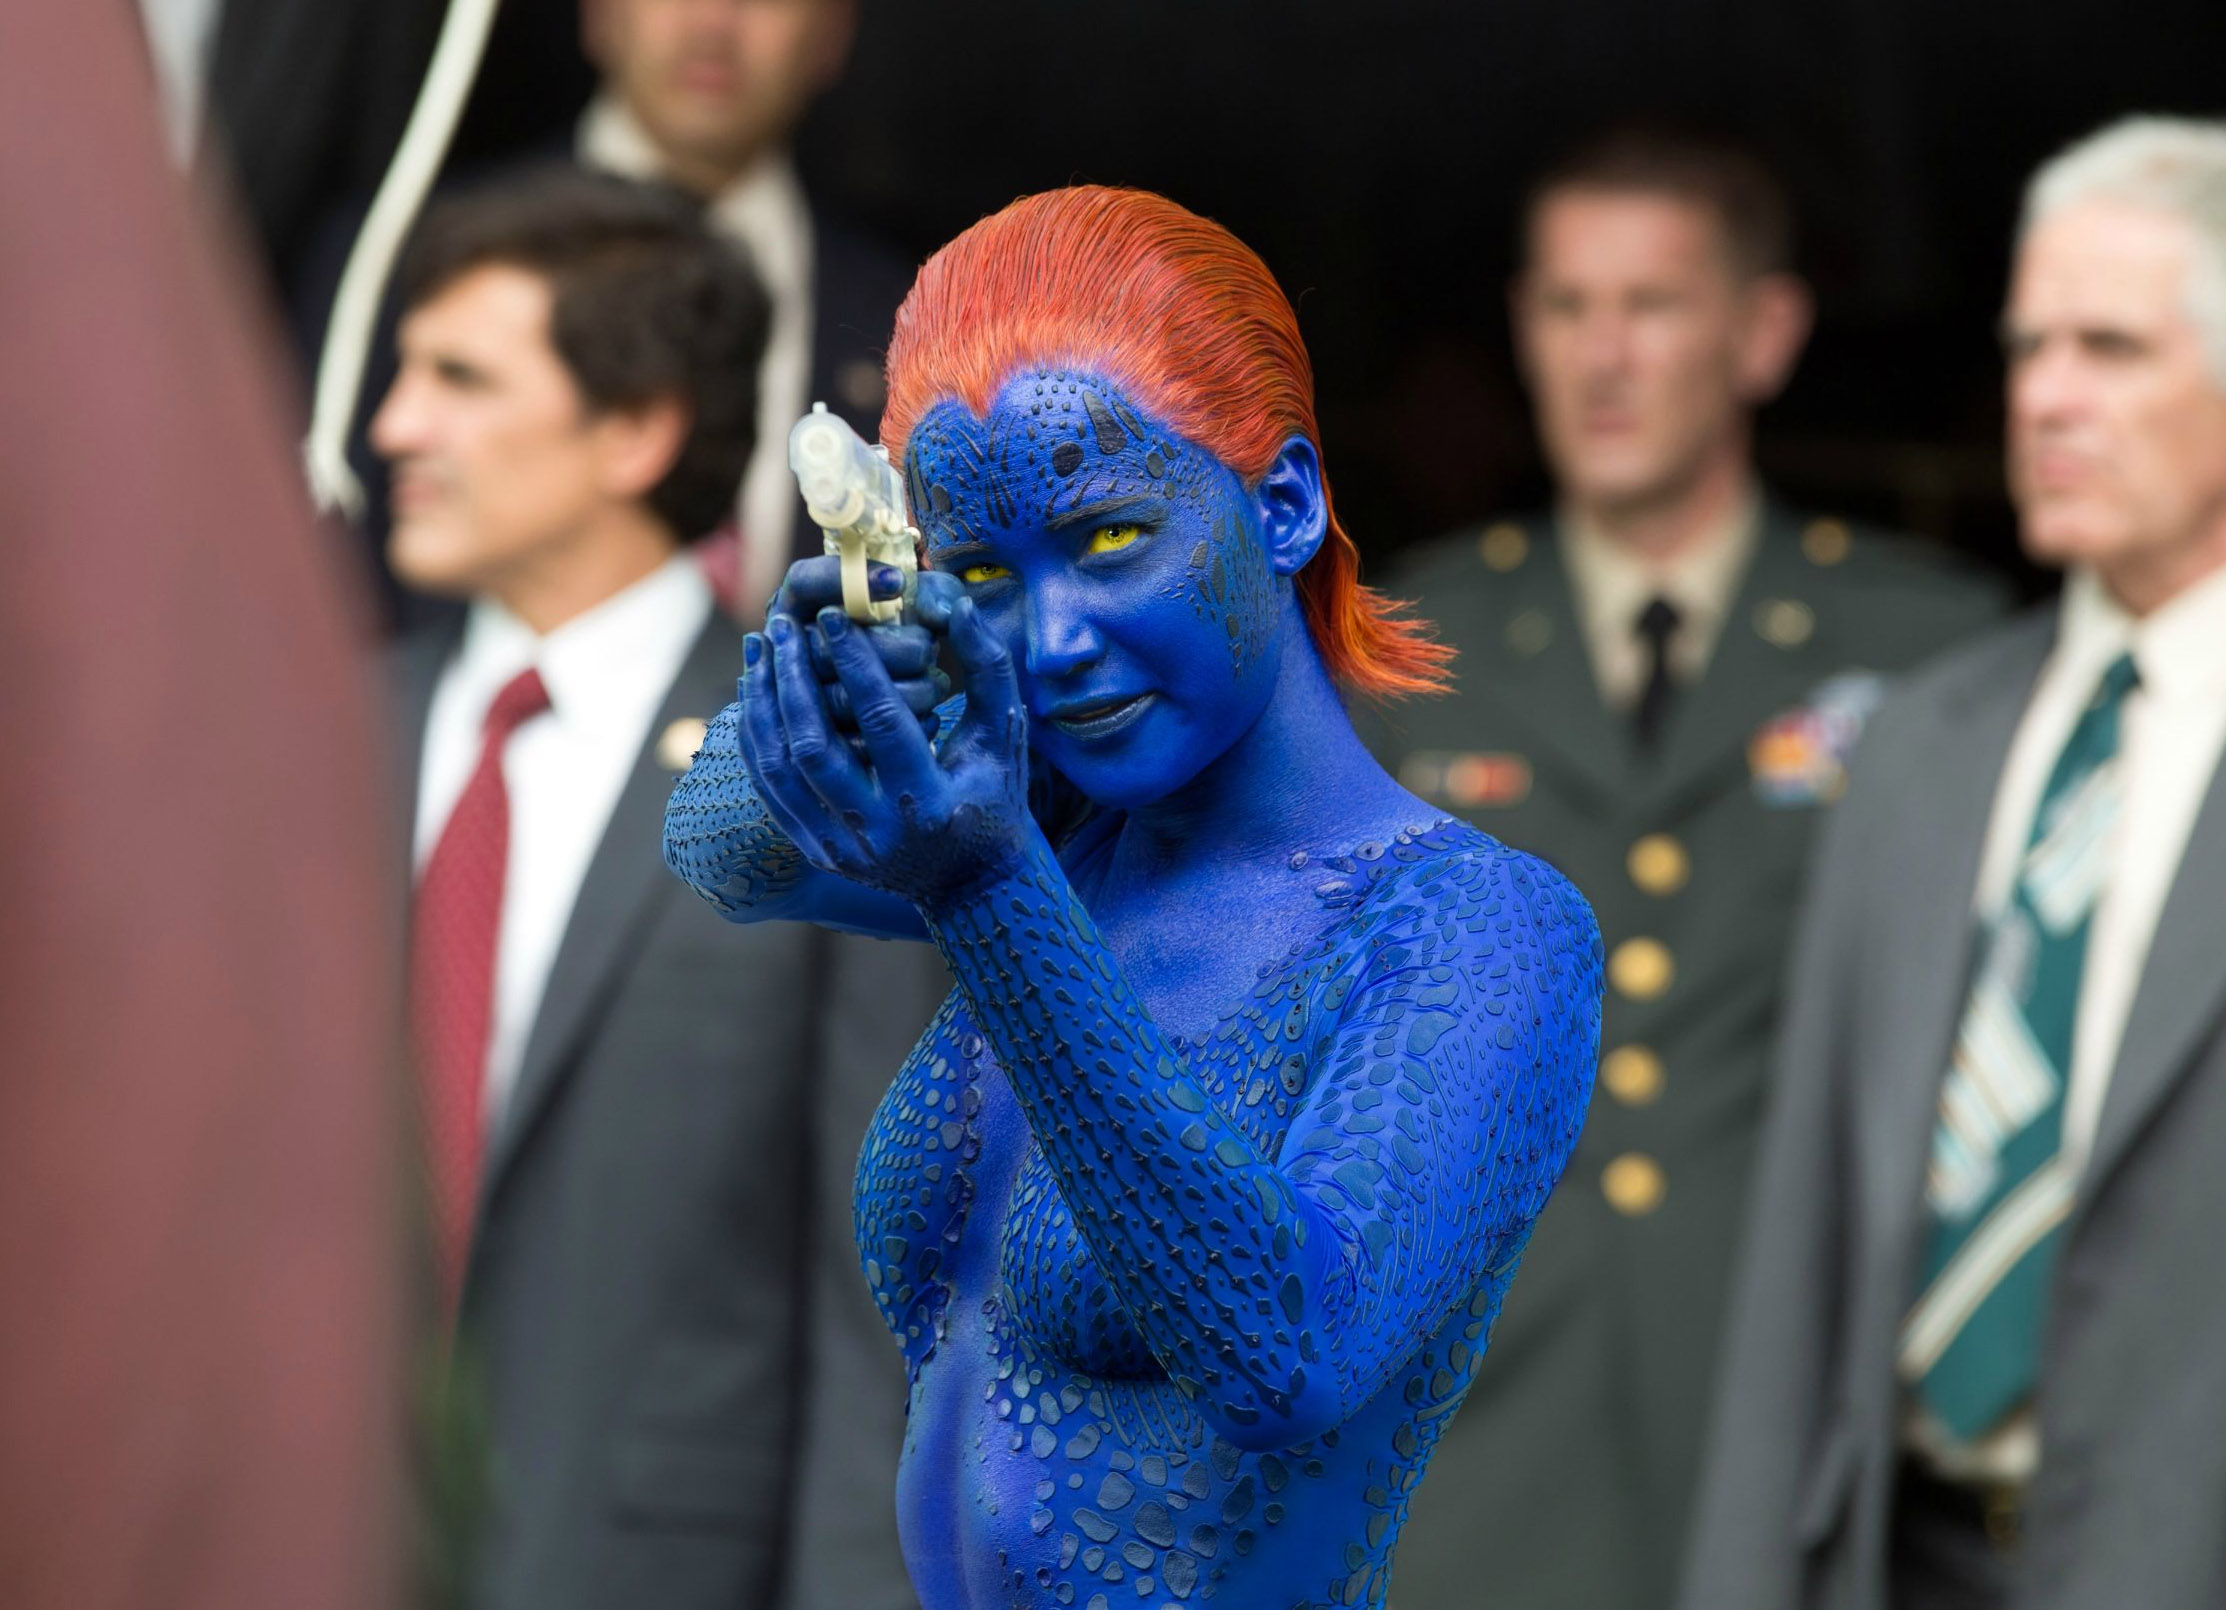 Jennifer Lawrence says she's up for more X-Men movies — but only if co-stars return